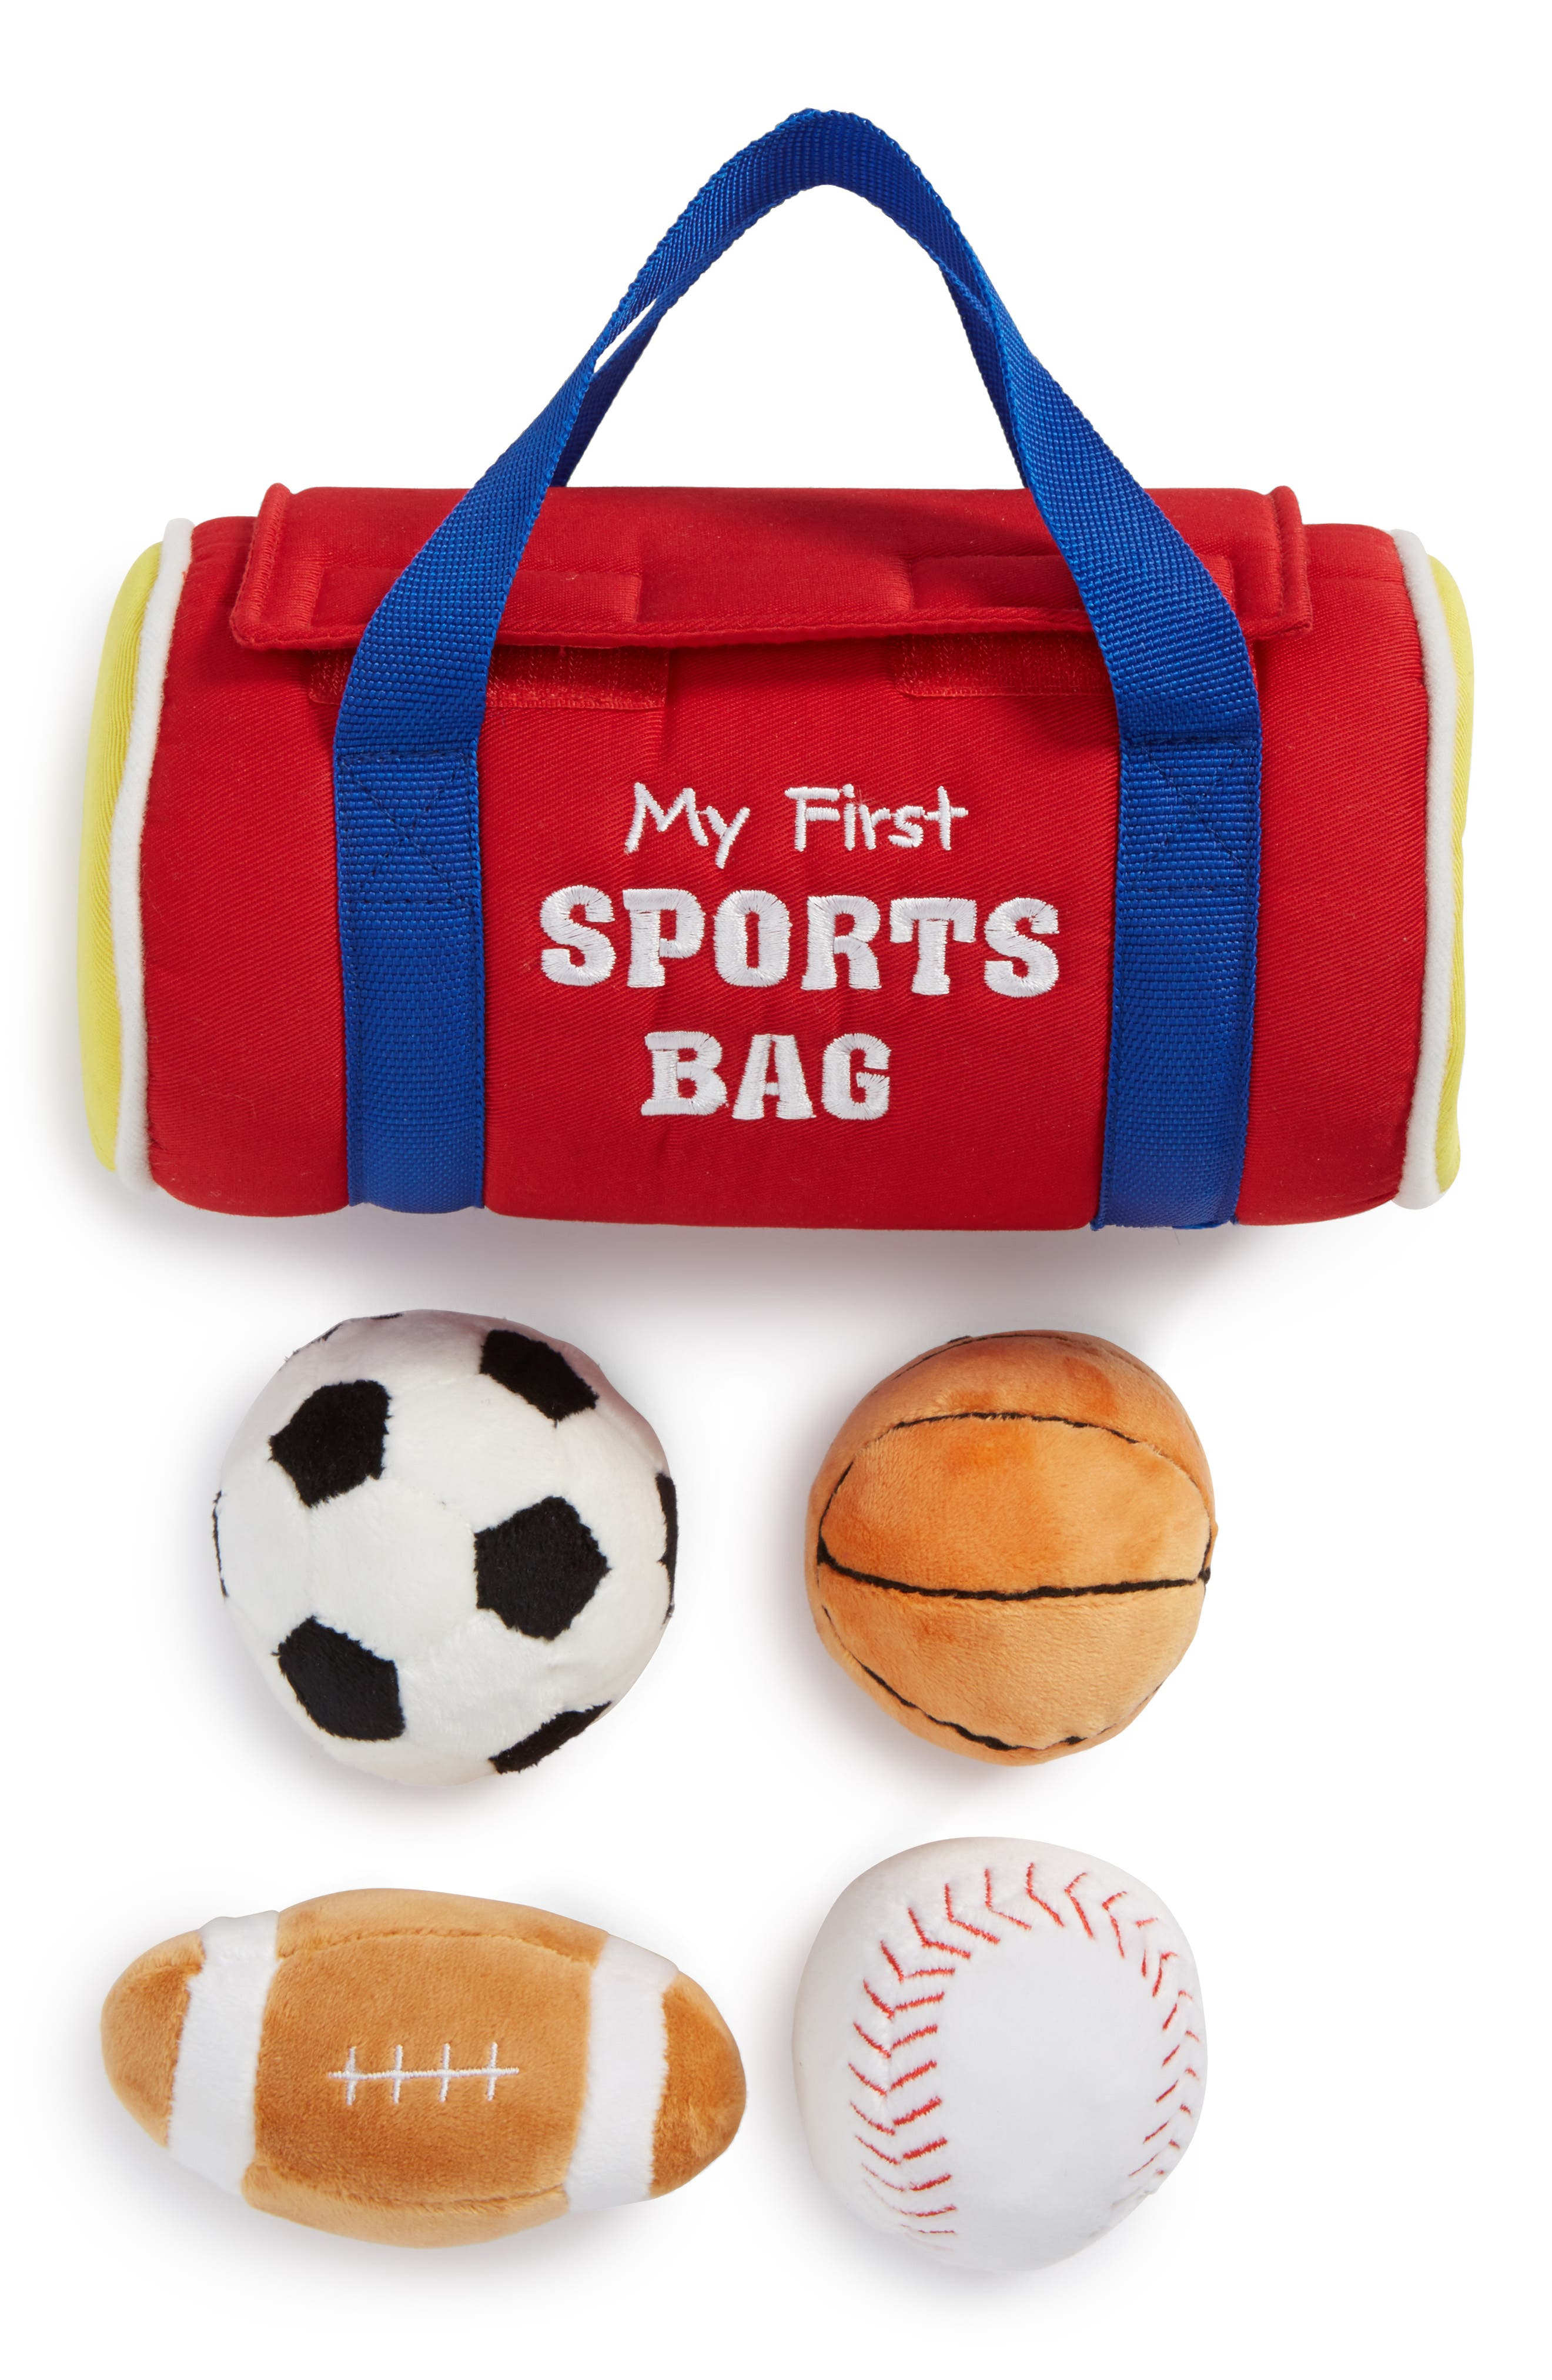 Baby Gund 'My First Sports Bag' Play Set,                             Alternate thumbnail 2, color,                             RED